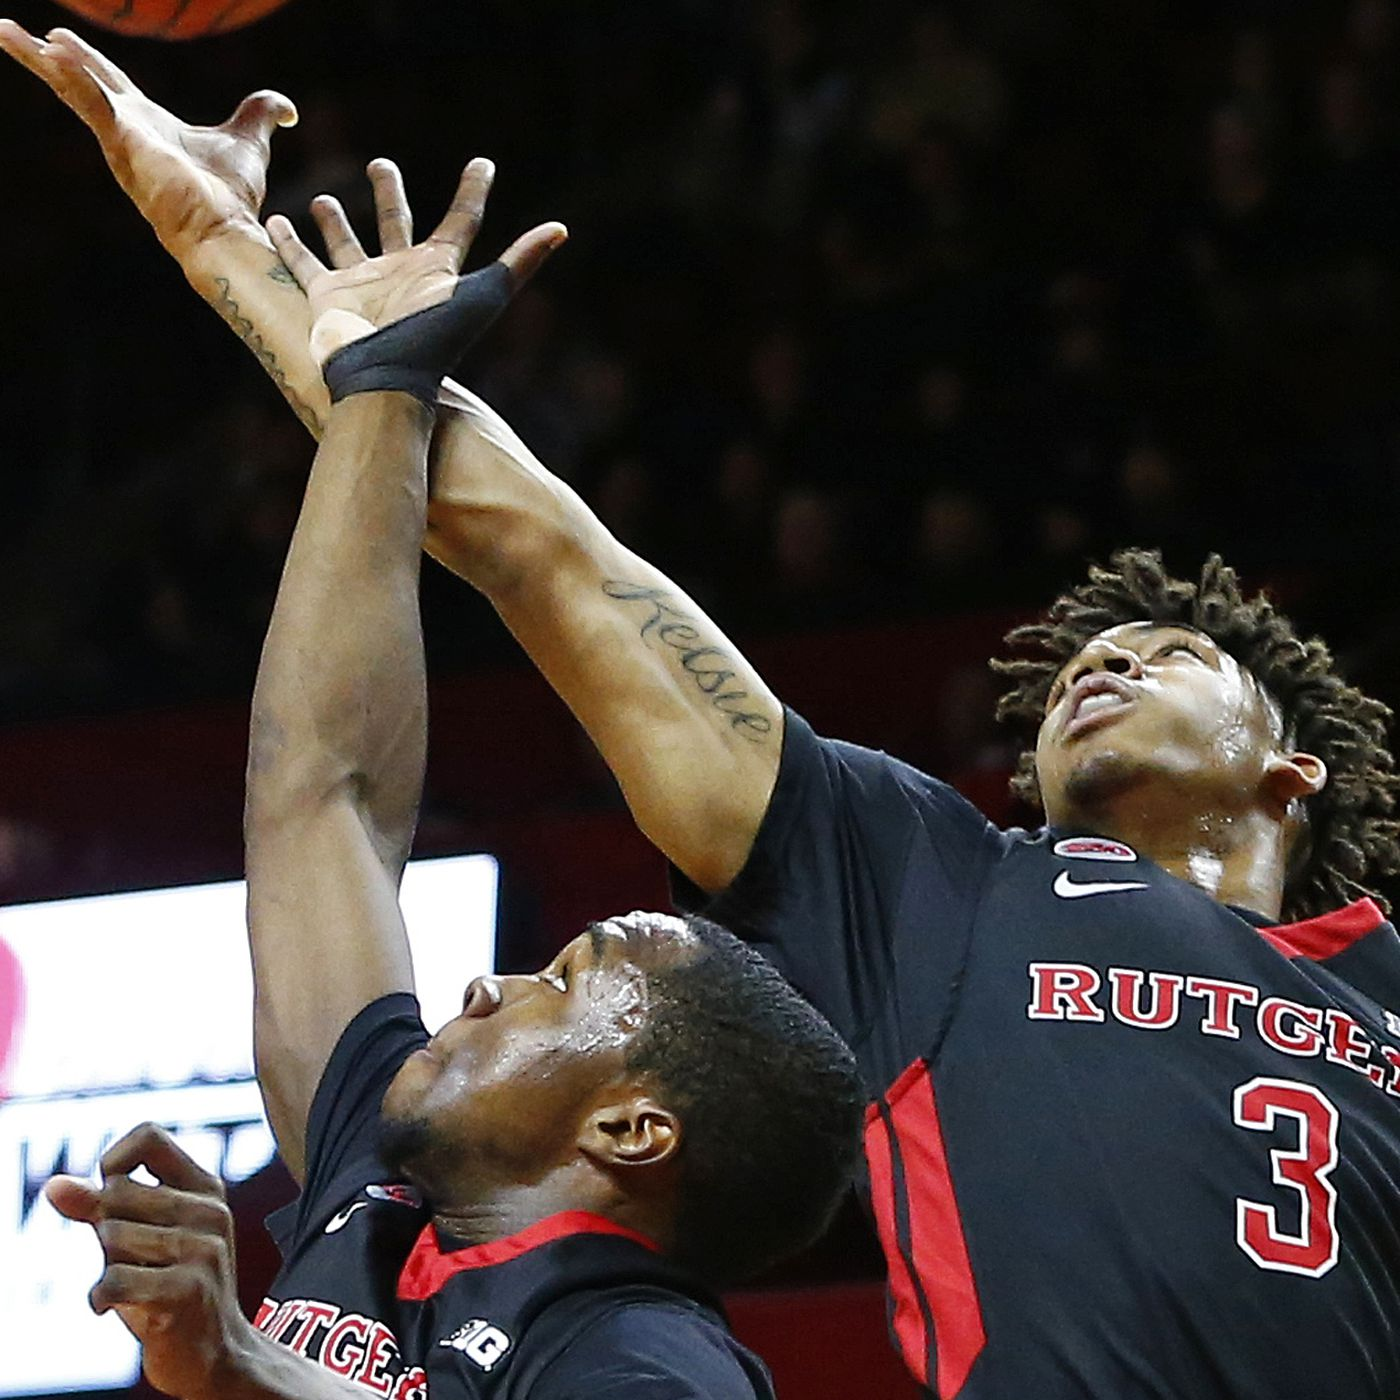 Rutgers Men's Basketball Offseason Workouts Underway With